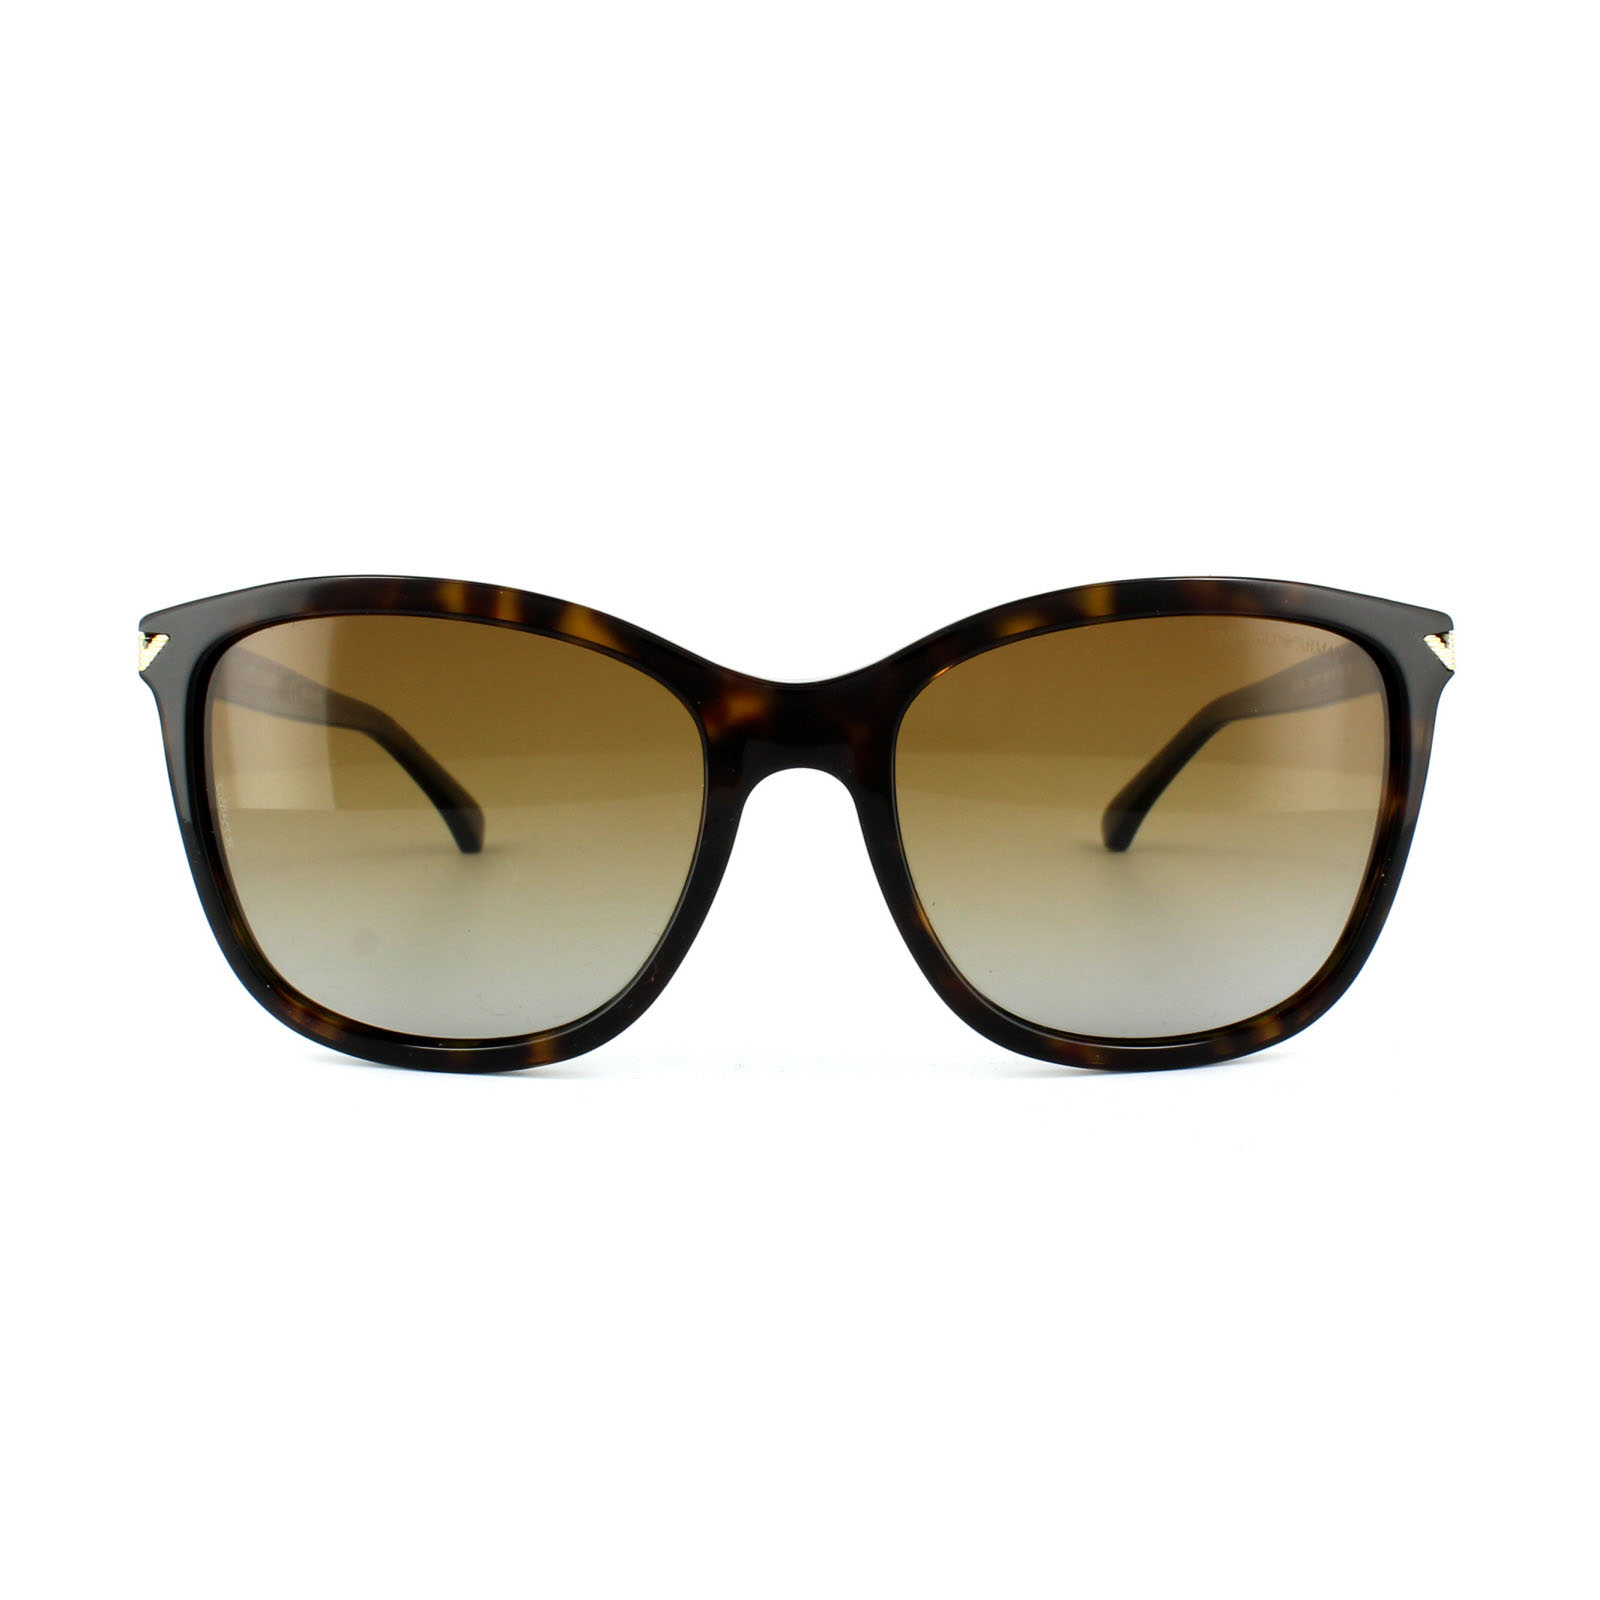 045442e6fd Cheap Emporio Armani 4060 Sunglasses - Discounted Sunglasses